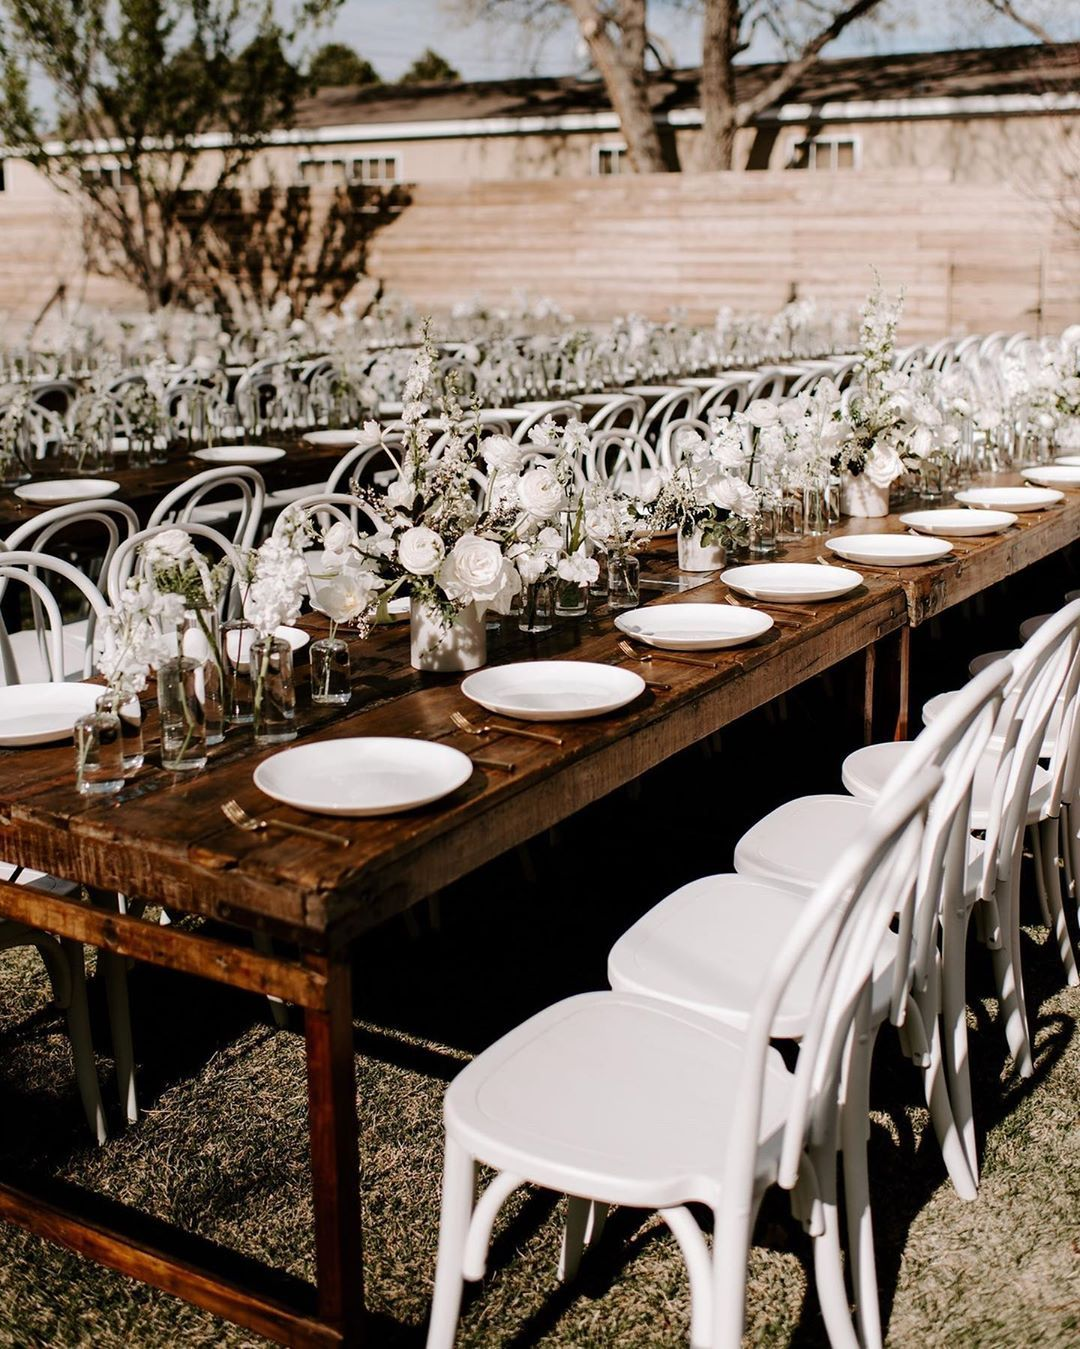 Farmhouse Dining Tables for Dallas Weddings and Events